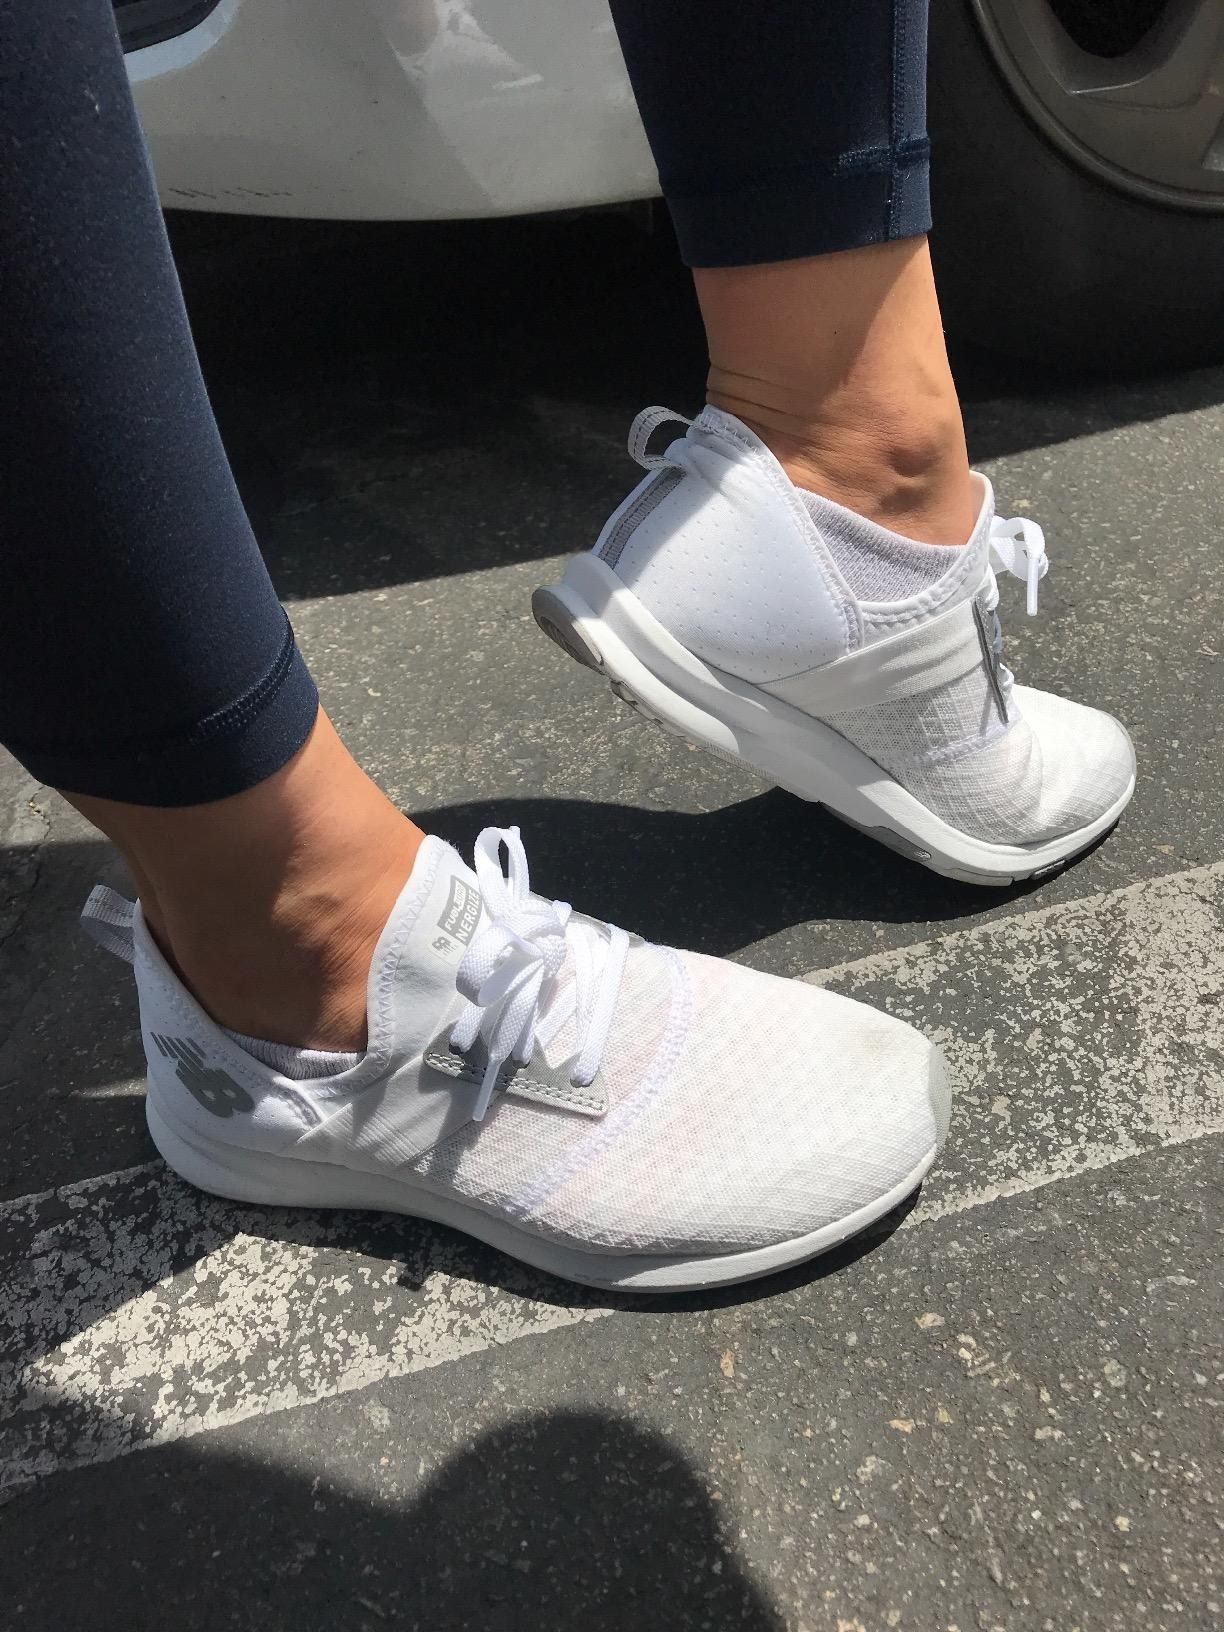 A reviewer wearing the shoes in white with a mesh, breathable exterior